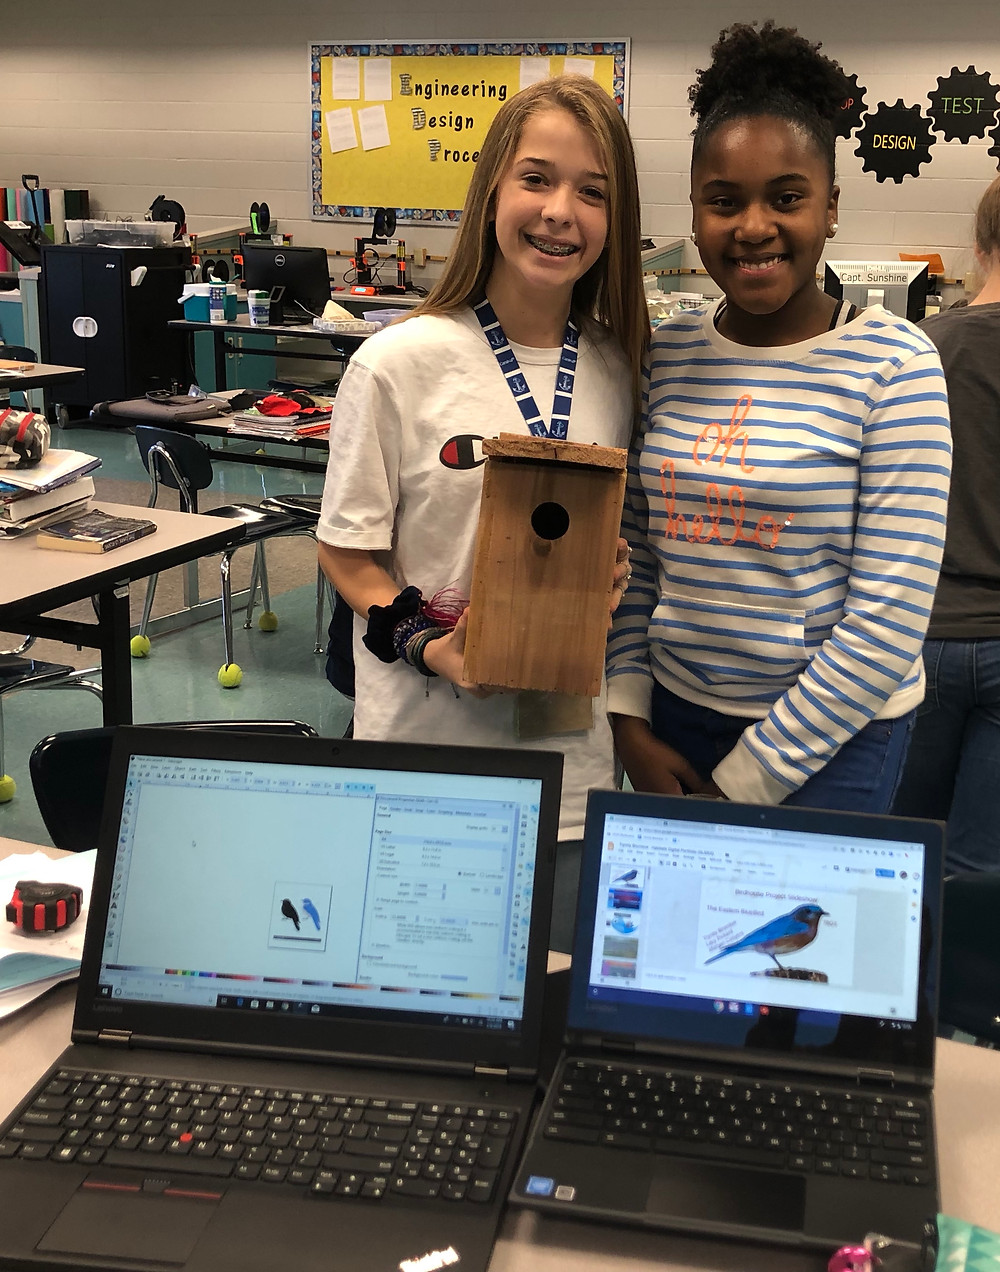 Trinity Brumlow & Morgan Conyers show the progress of their group's research, as well as their birdhouse construction.